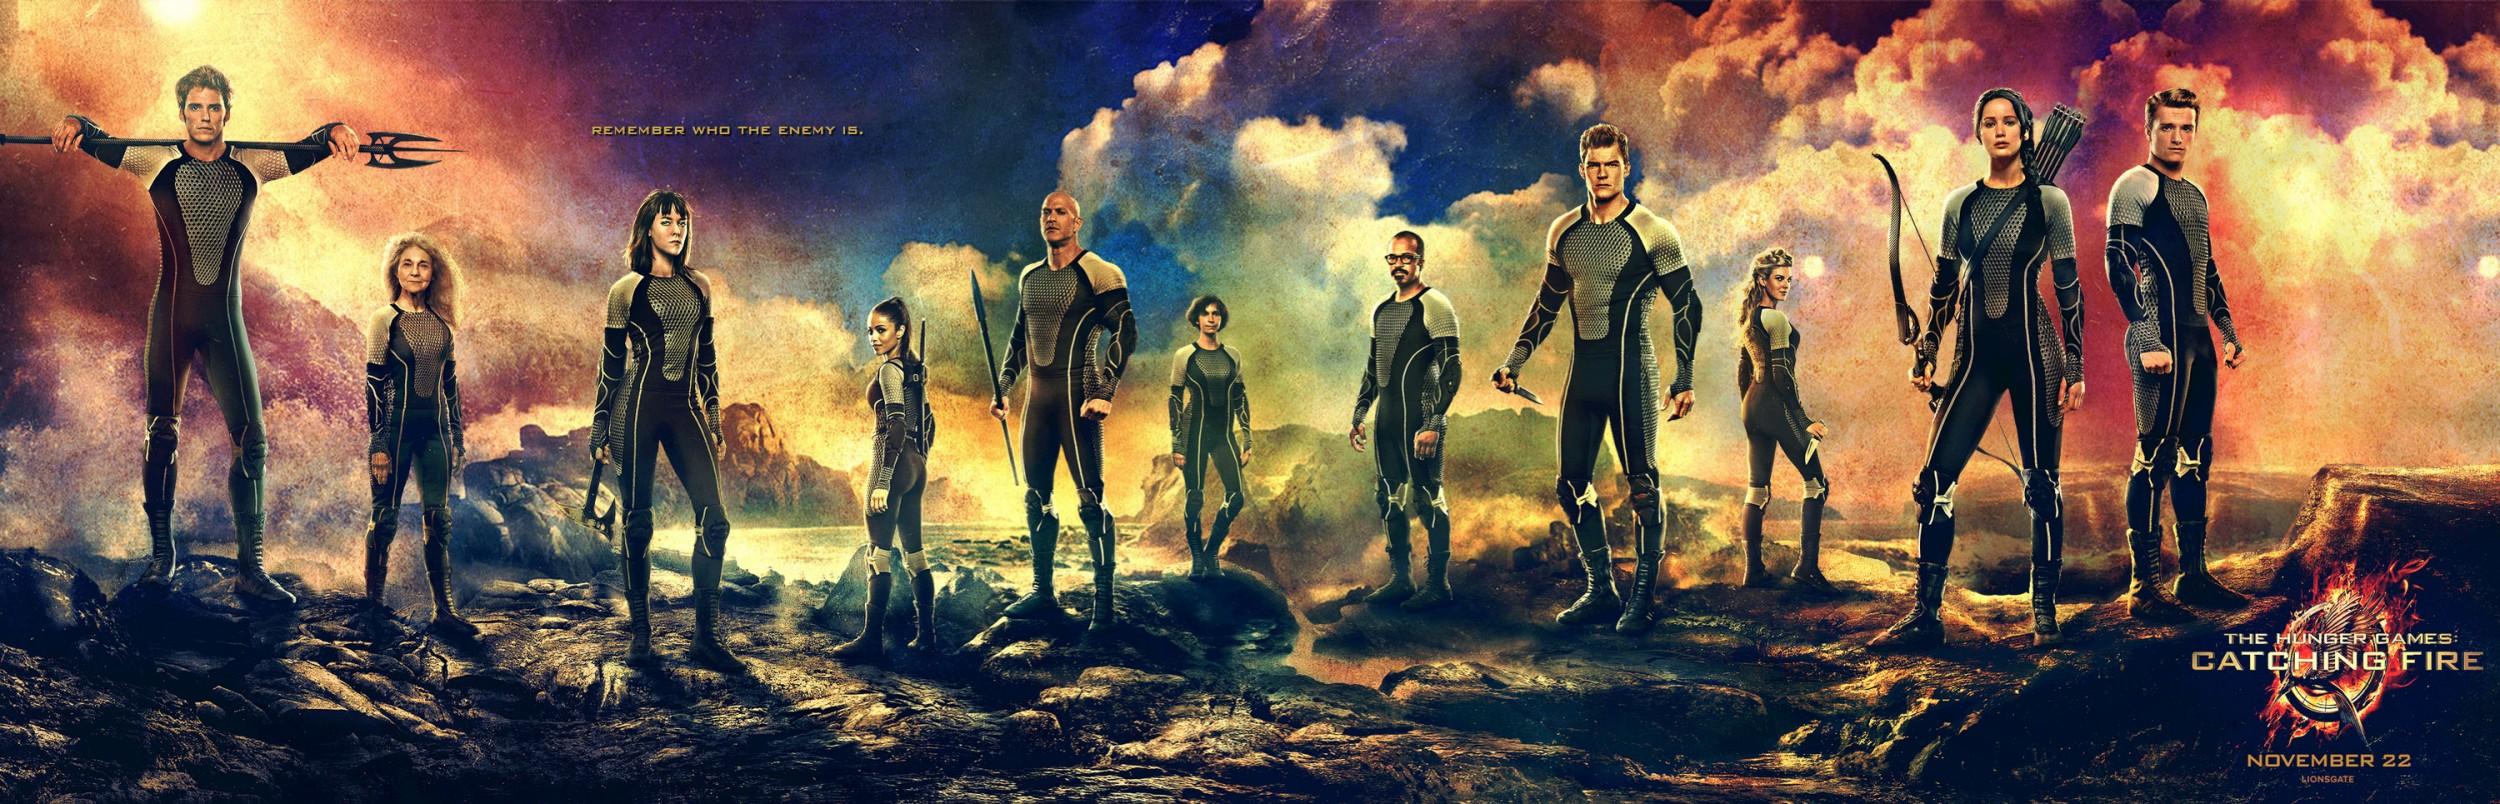 The Hunger Games Catching Fire-Official Poster Banner PROMO BANNER-02SETEMBRO2013